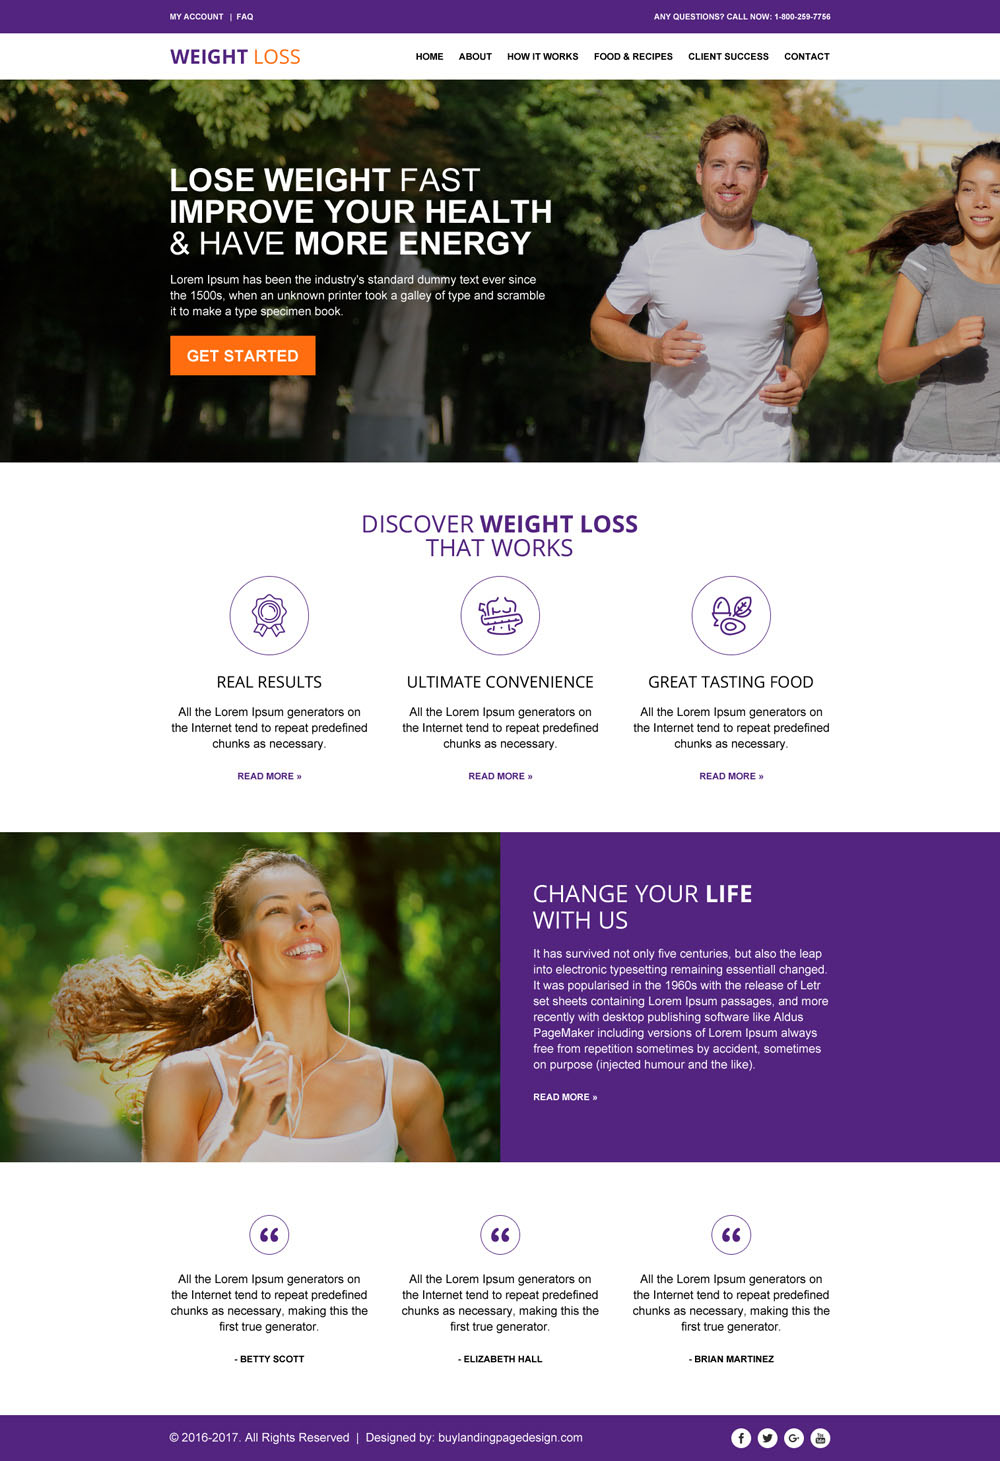 best-weight-loss-html-website-template-to-create-professional-weight-loss-website-001